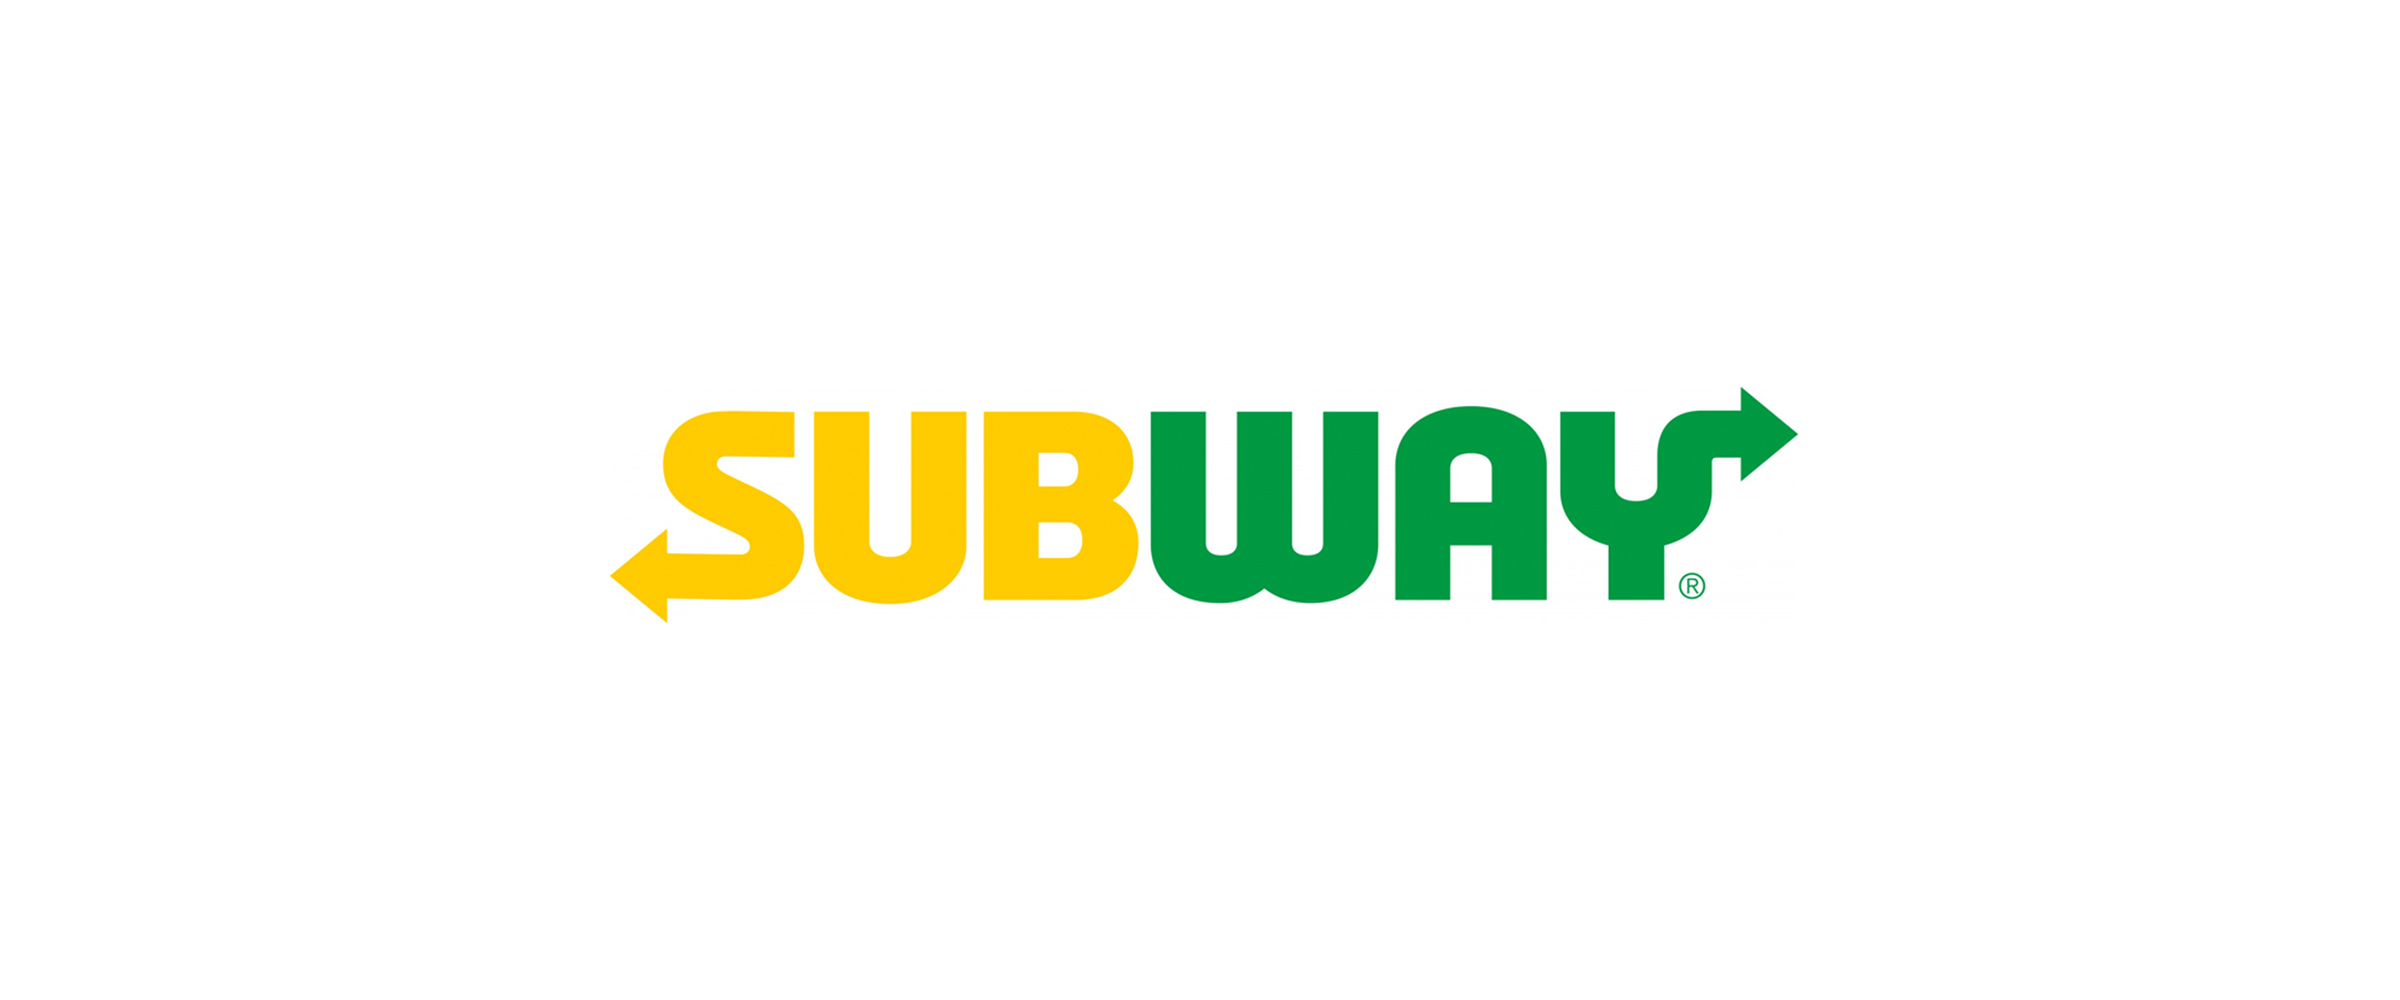 subway_header2